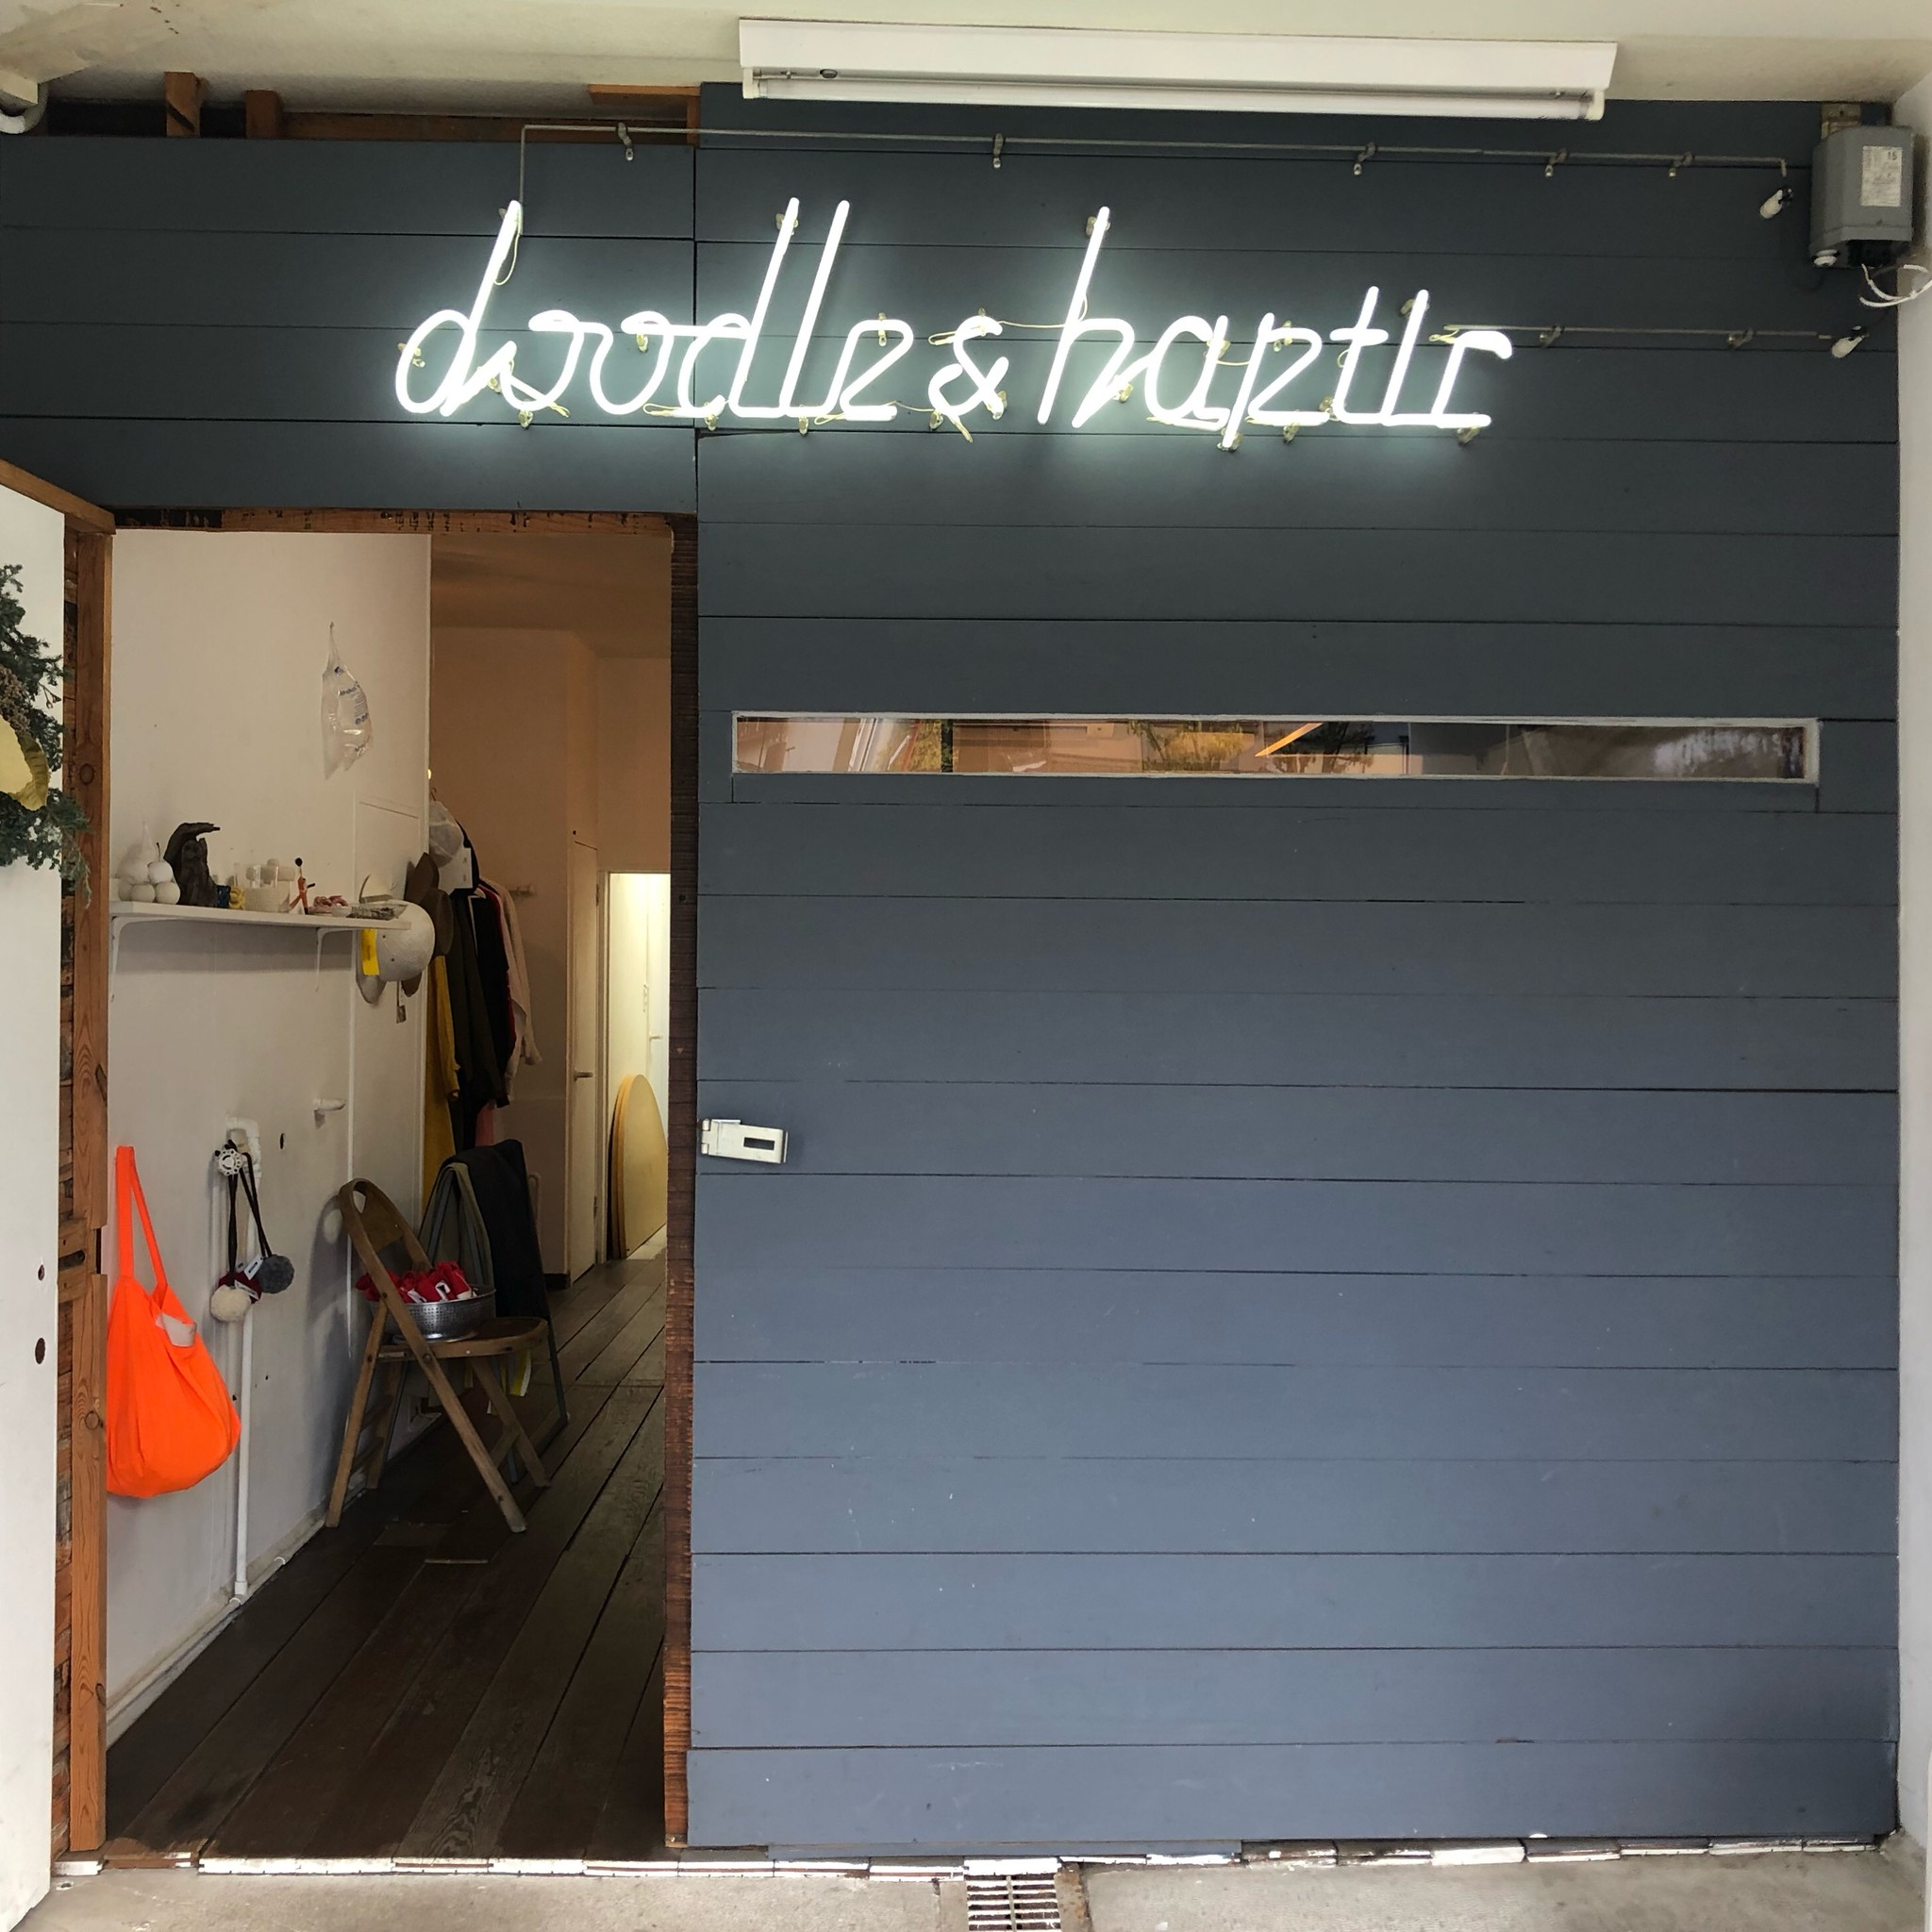 doodle&haptic POPUPありがとうございました。